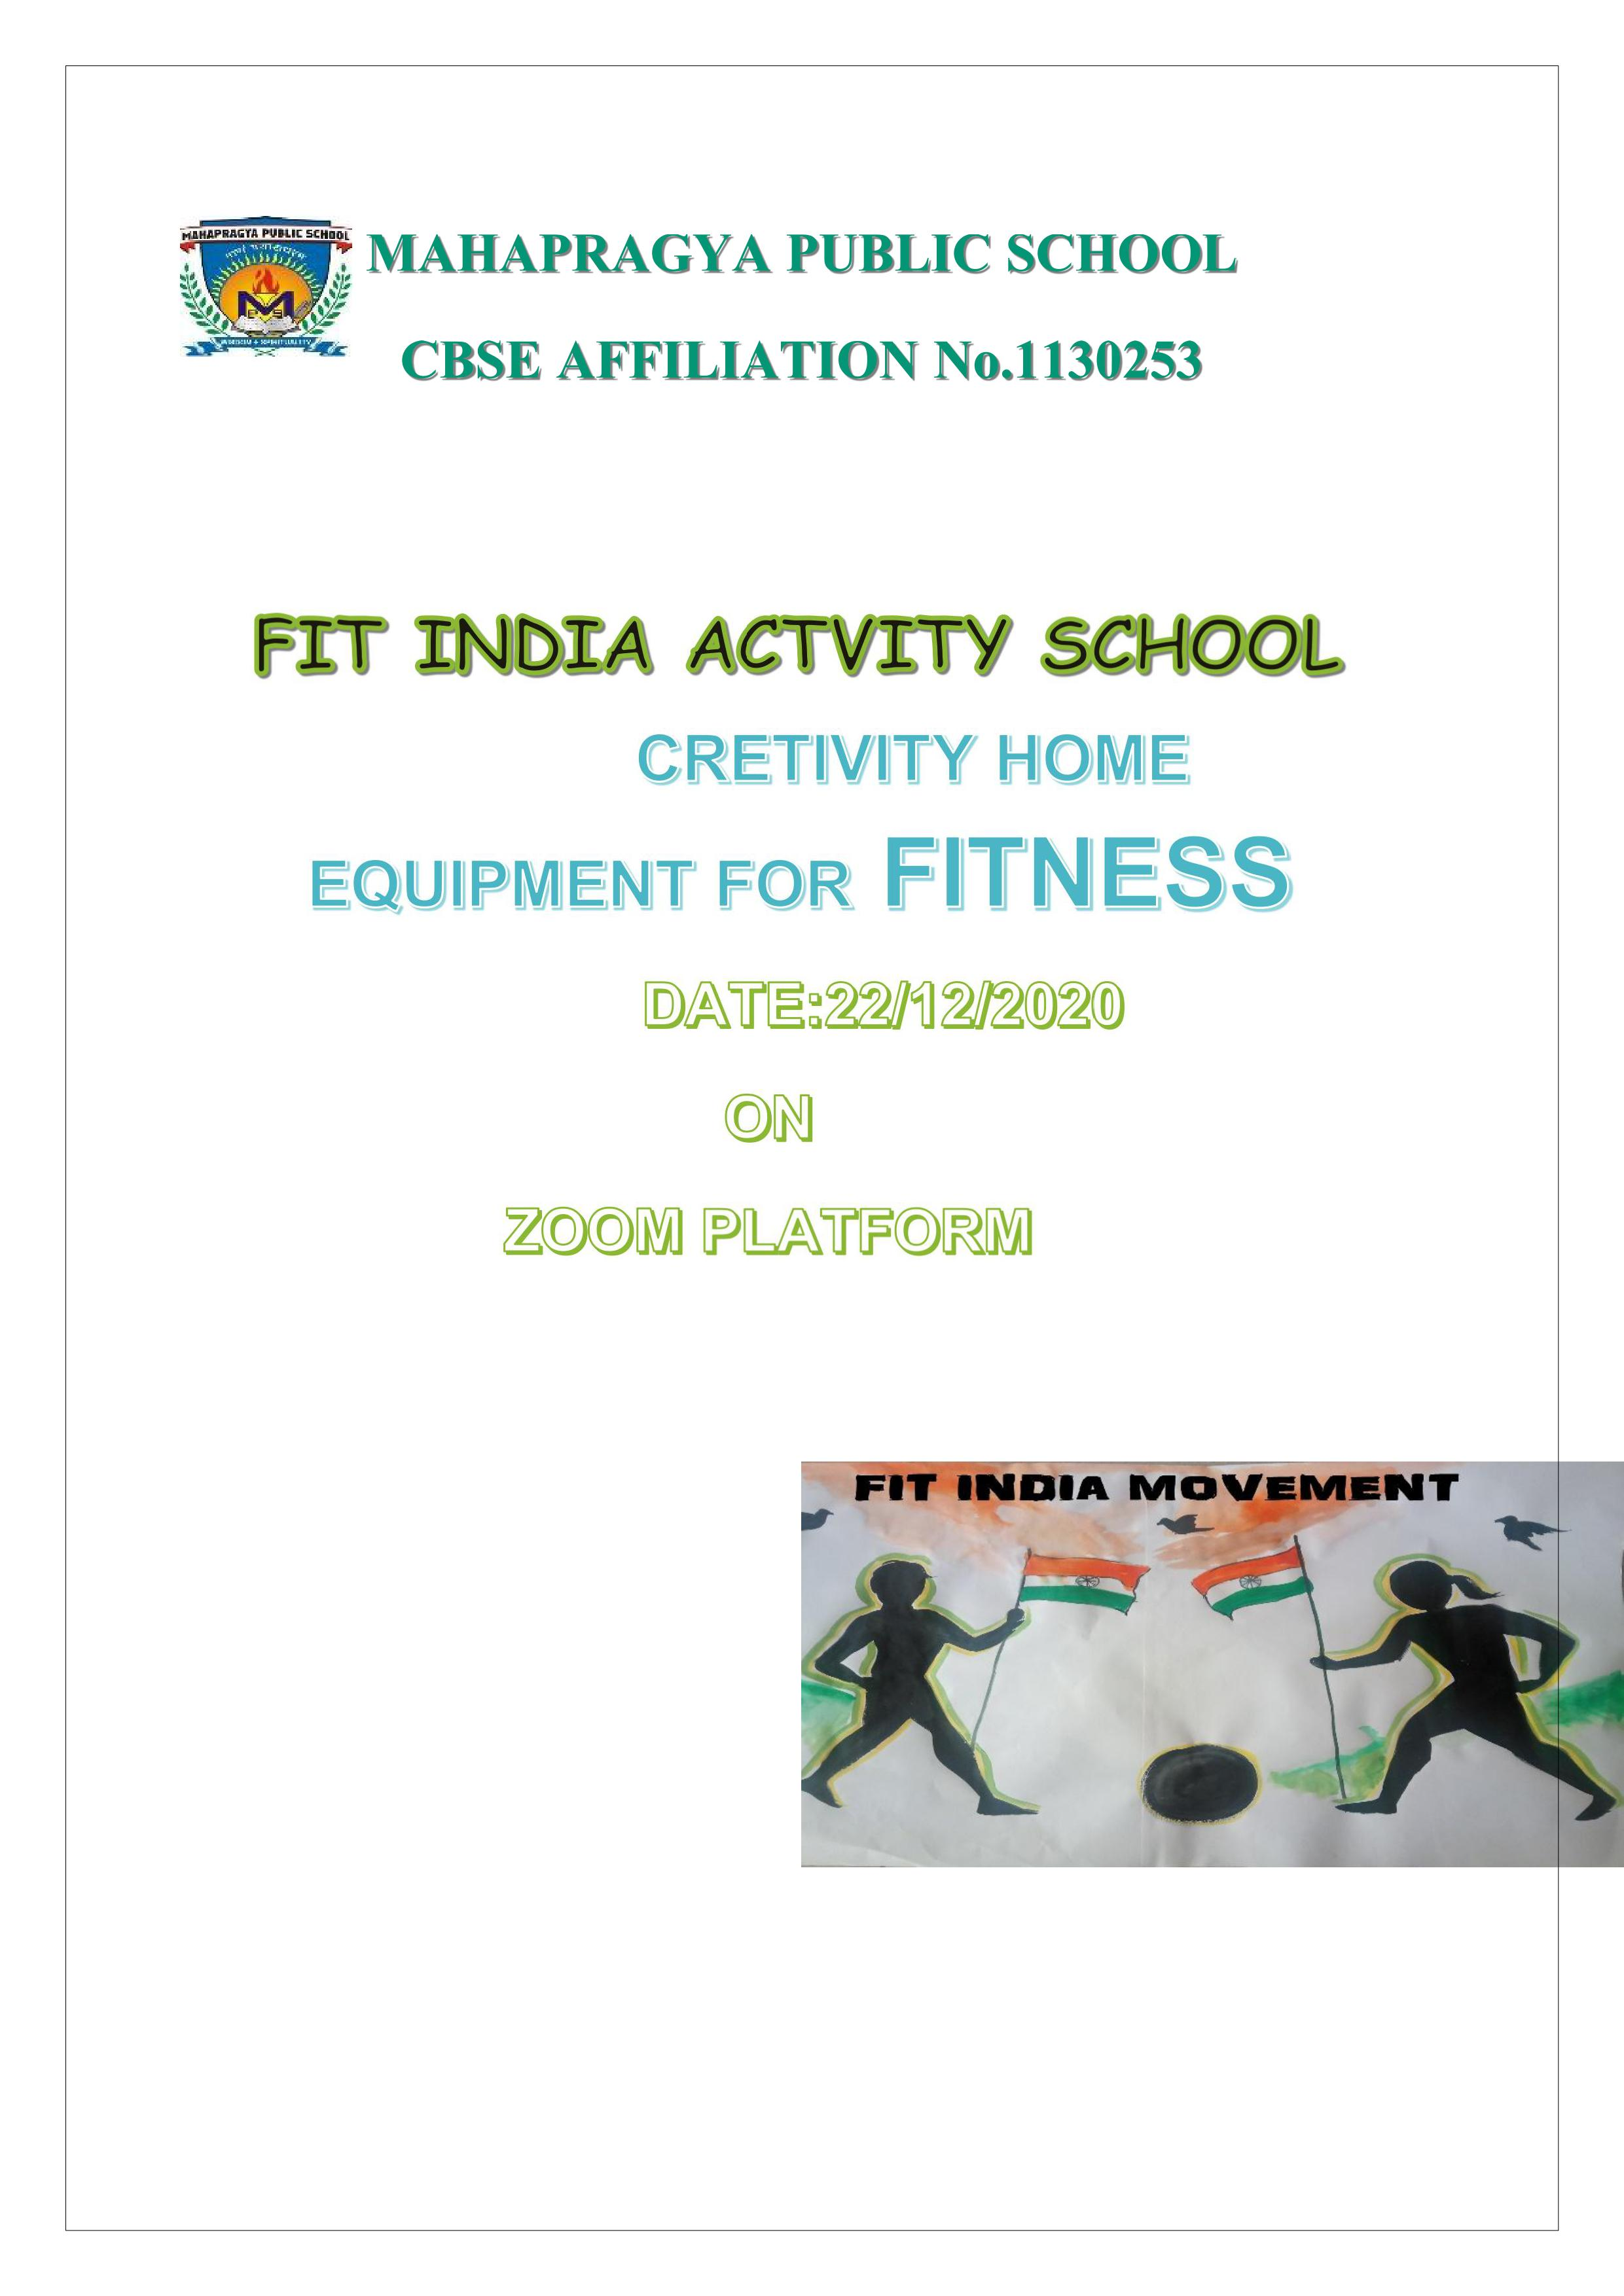 Virtual fit India – Equipment for Fitness